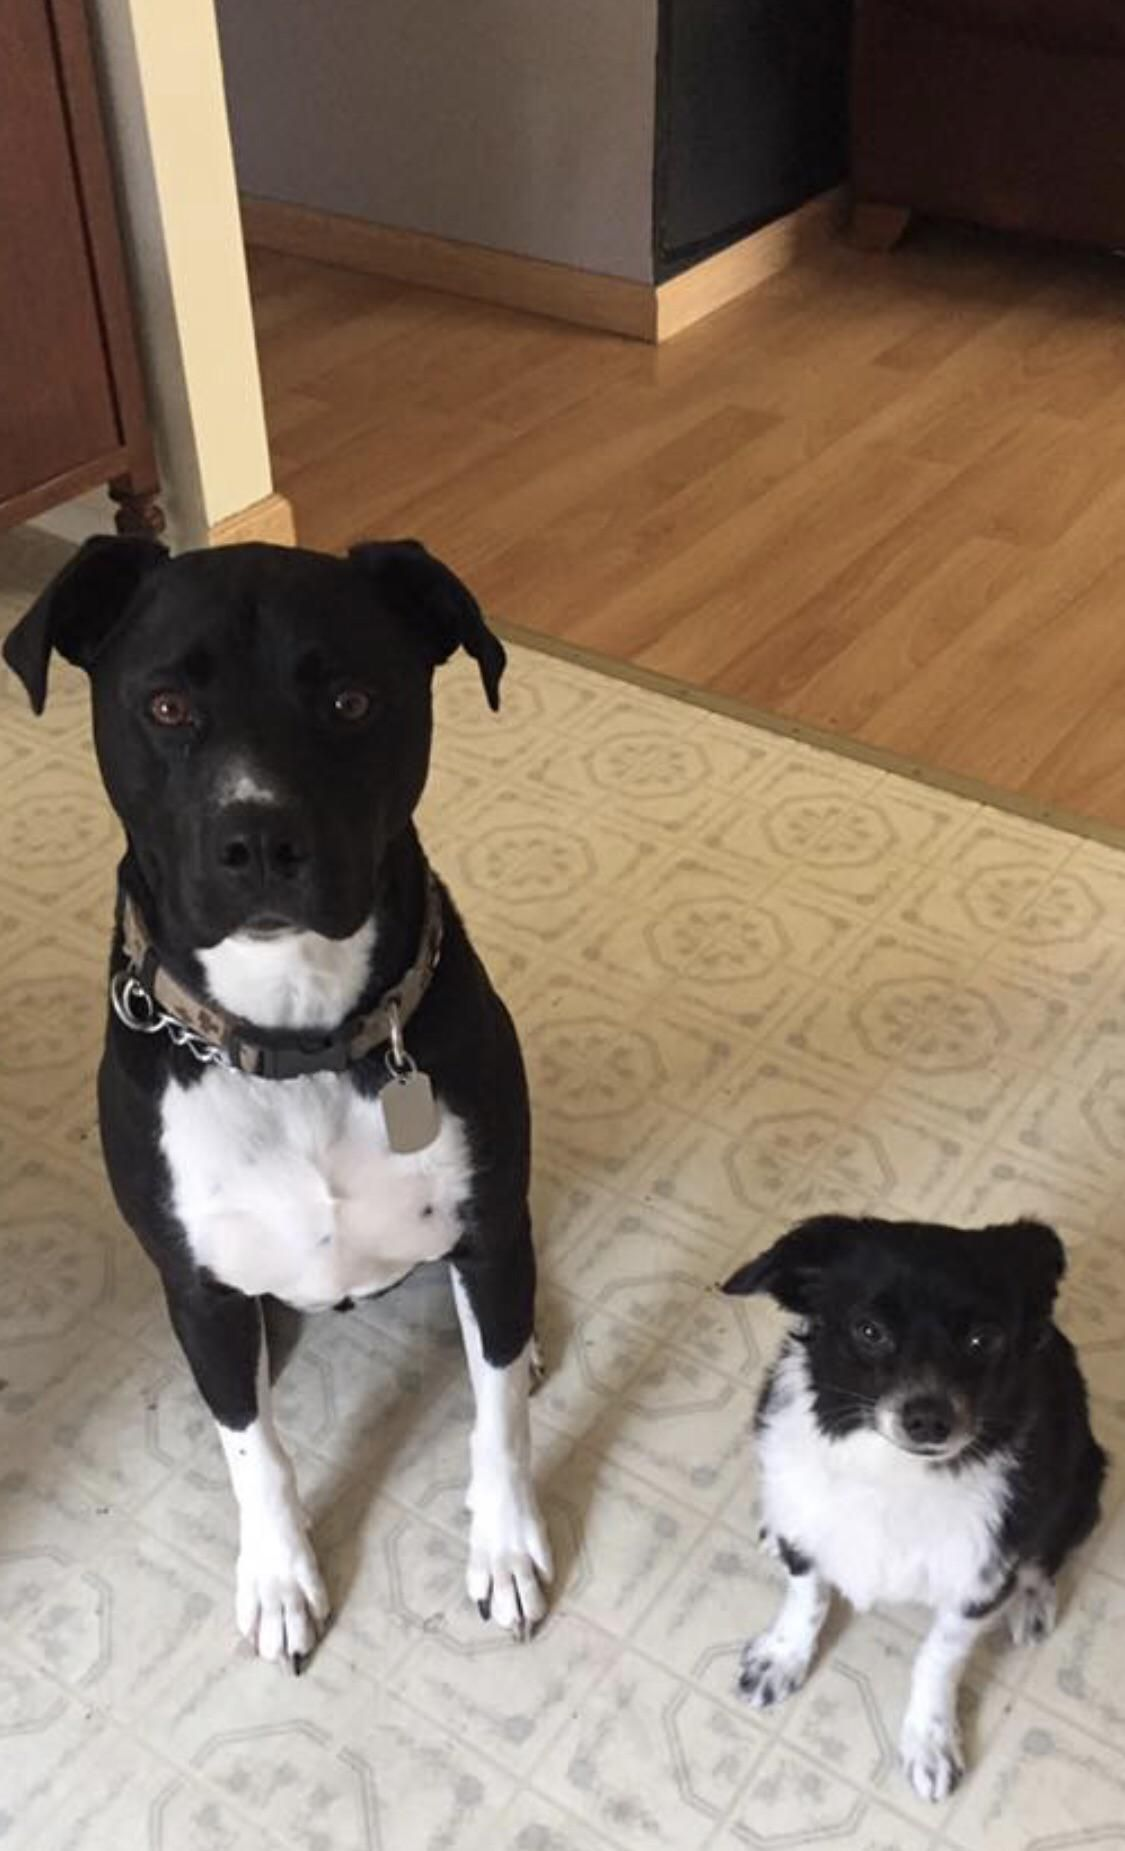 Theyre Like Arnold Schwarzenegger And Danny Devito In Twins Dog Dogs Pic Pics Picture Pictures Puppy Pupp Puppy Checklist Puppies Arnold Schwarzenegger